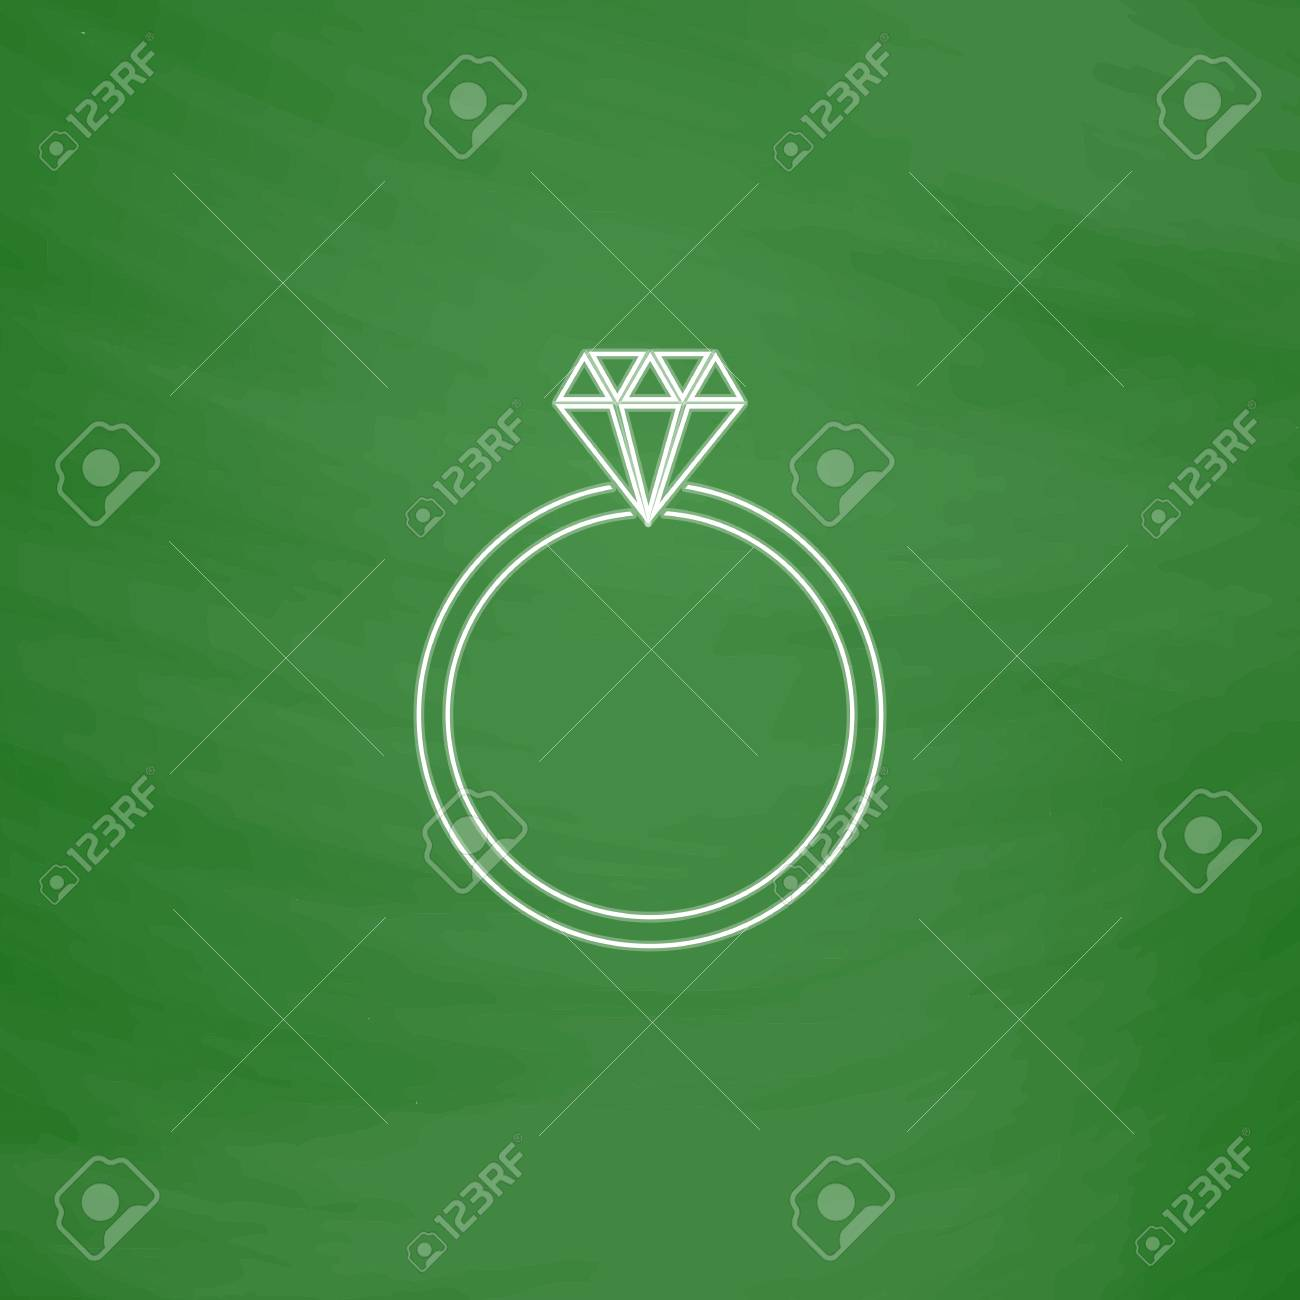 Diamond Ring Outline Vector Icon Imitation Draw With White Chalk On Green Chalkboard Flat: Drawn Chalkboard Wedding Ring At Reisefeber.org